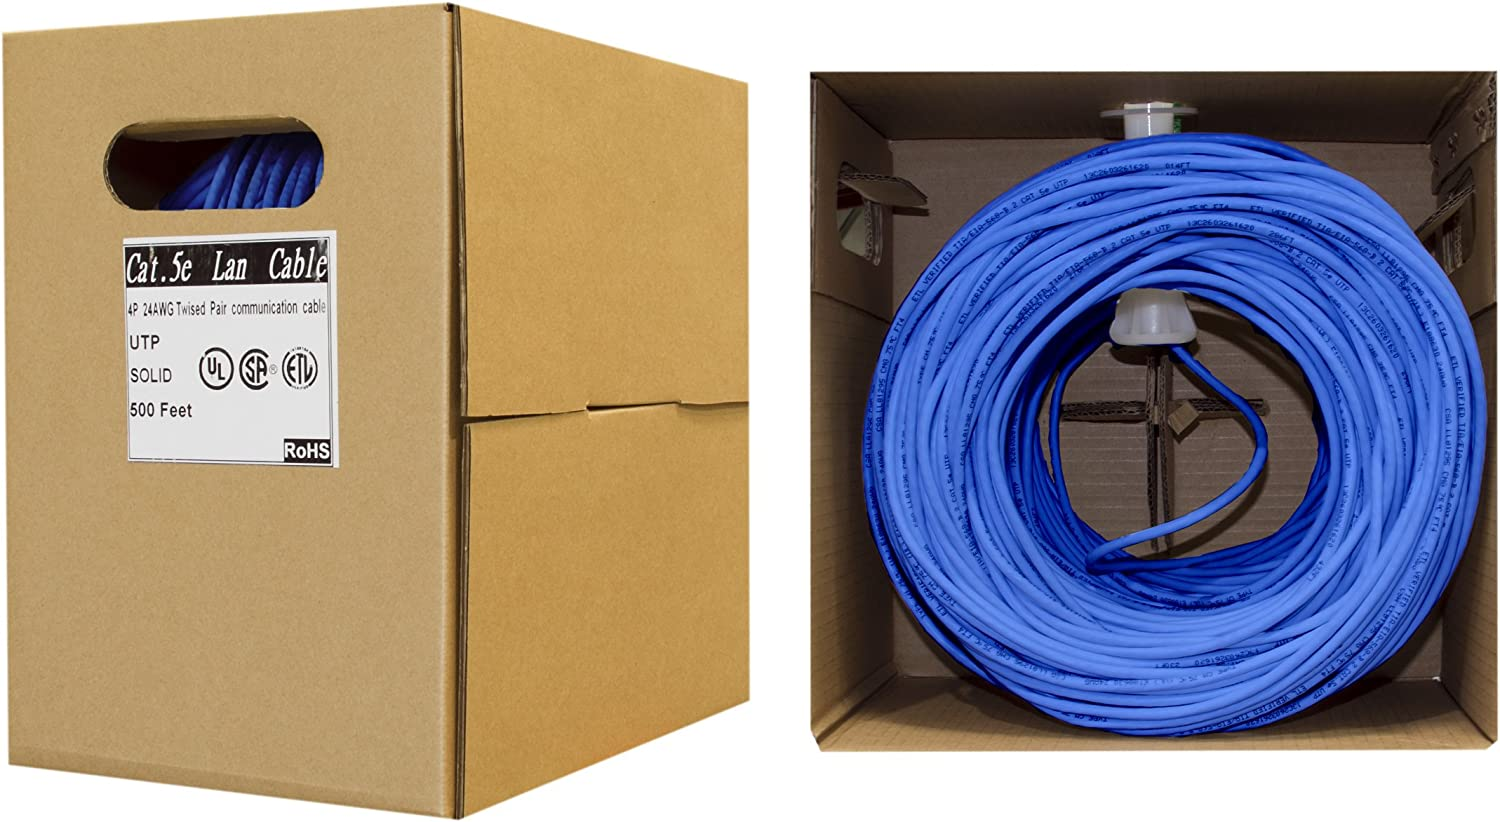 CMR ETL Listed 4 Pair Stranded Bare Copper Unshielded Twisted Pair Ethernet Cable 350 Mhz 24 AWG with Pull Box Blue 1000 Foot Bulk Cat5e Riser CableWholesale UTP